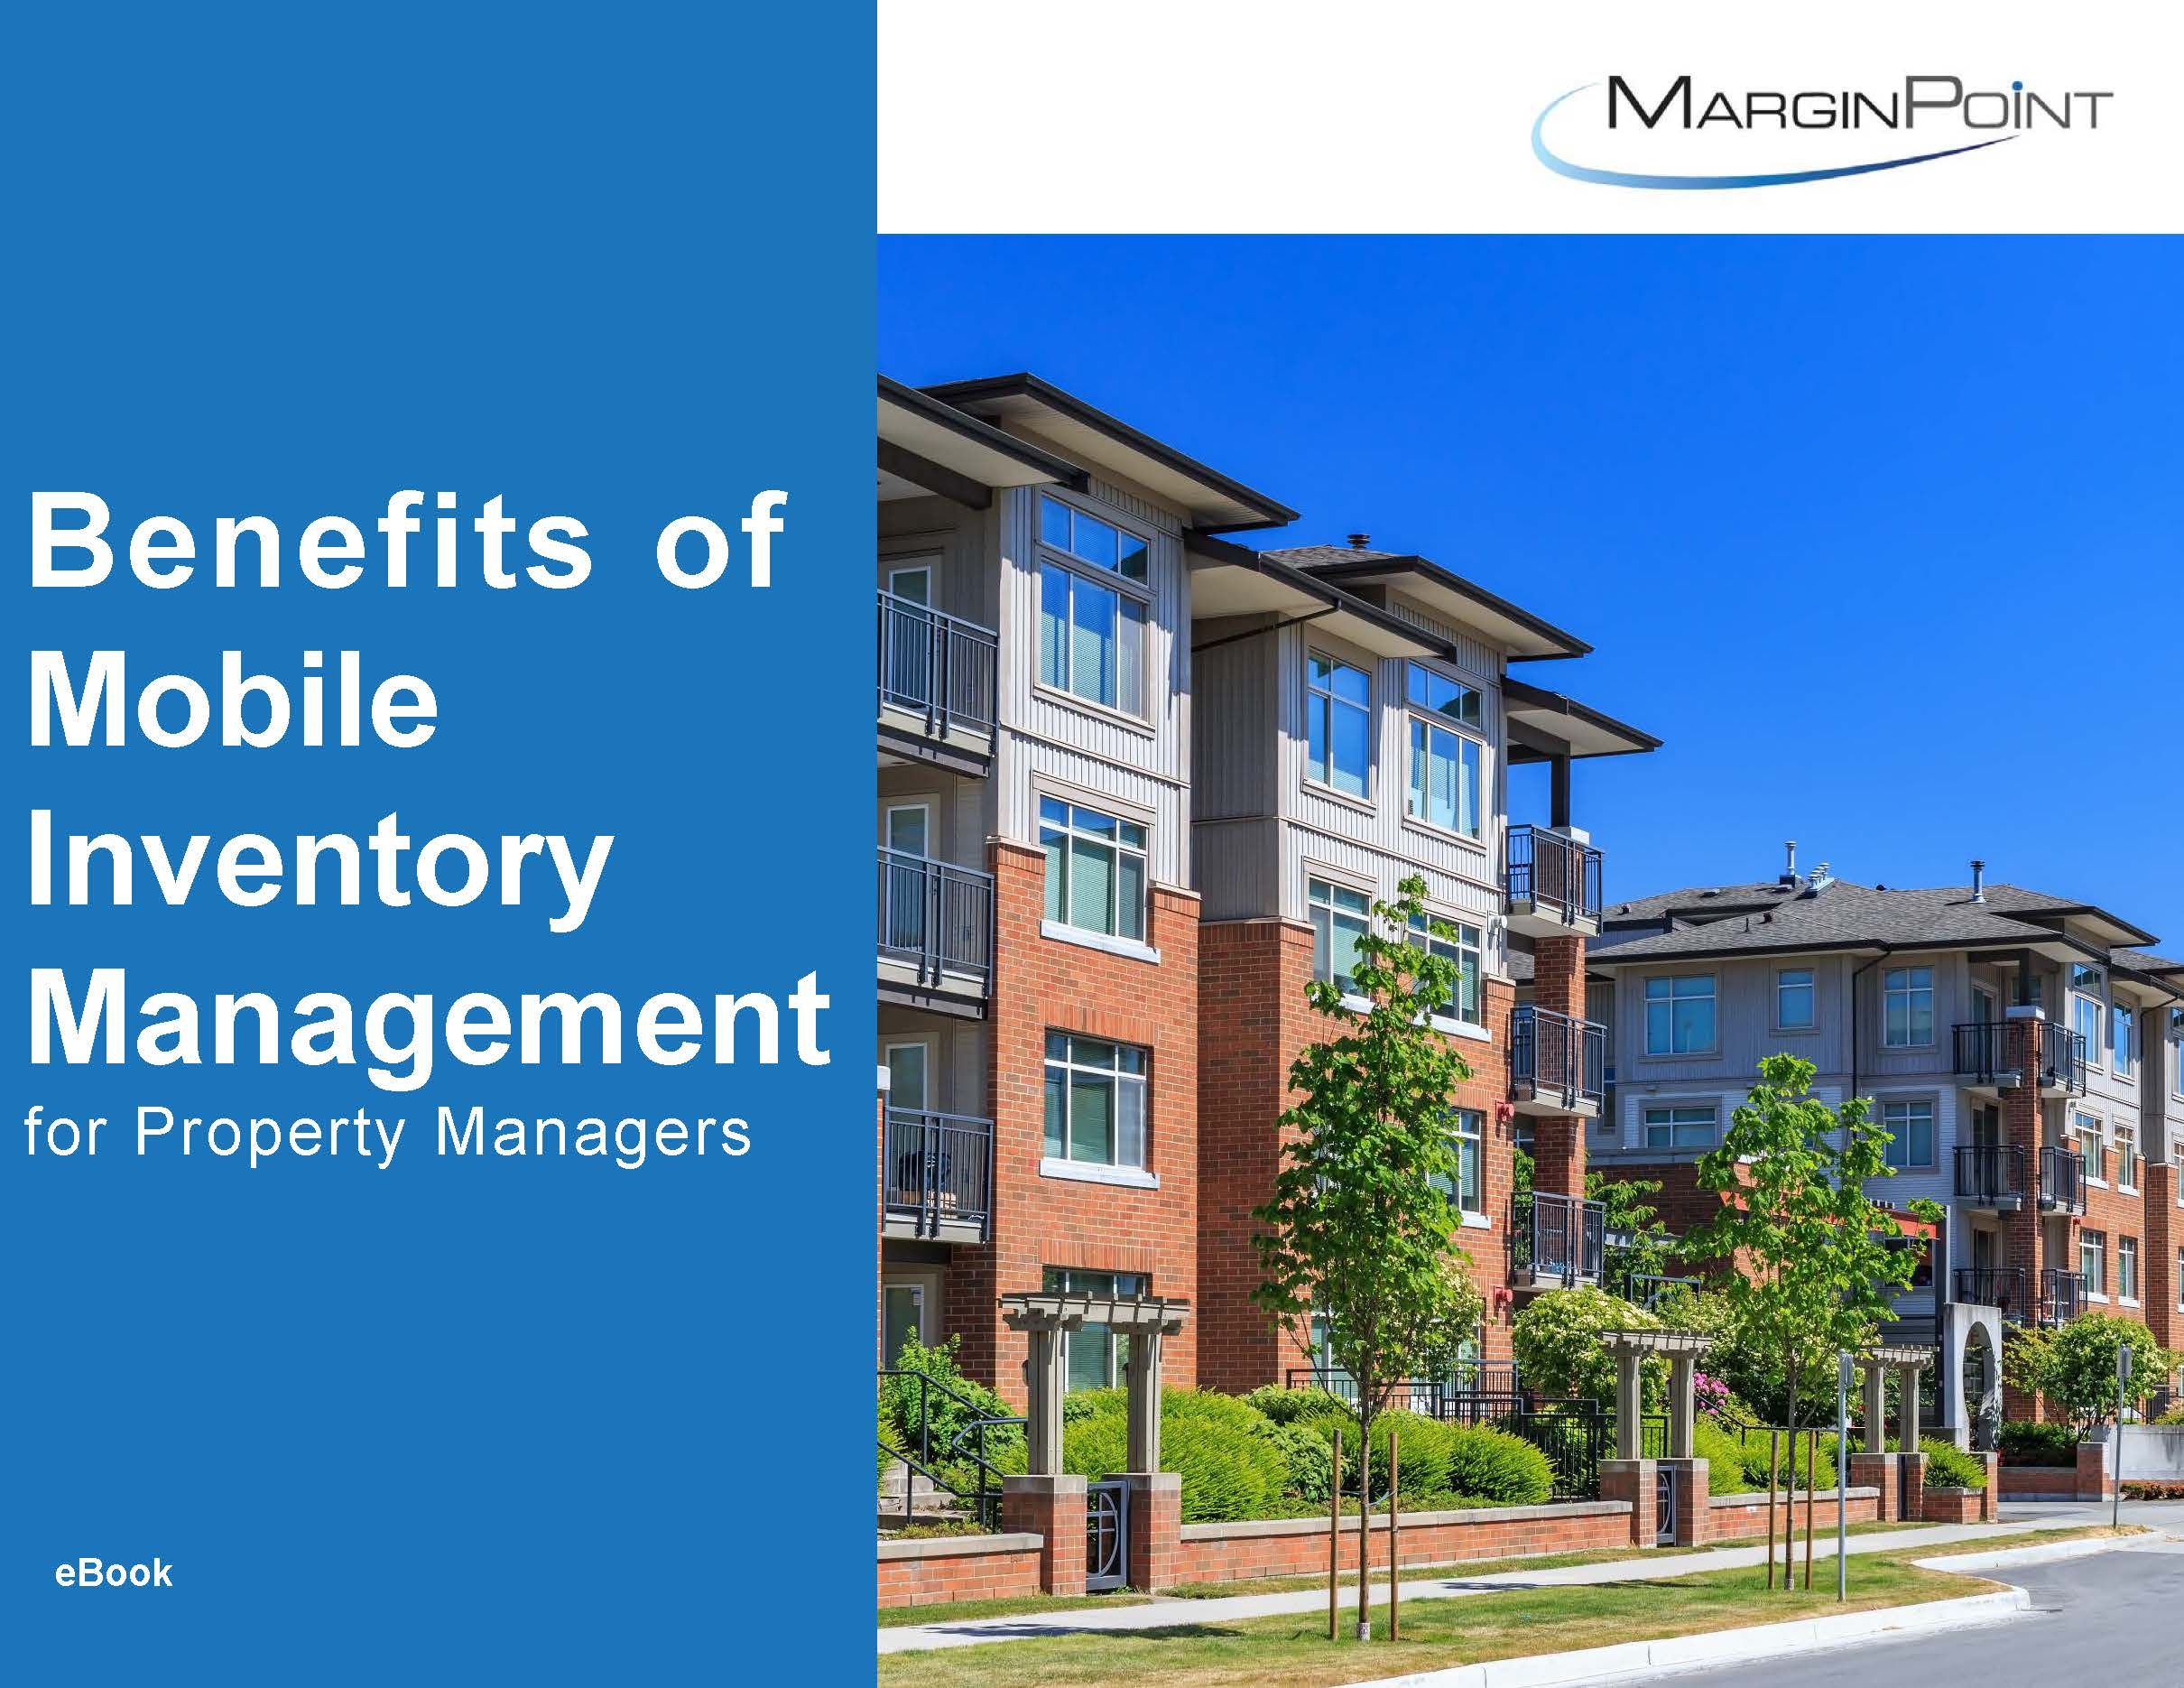 Benefits-eBook-PrptyMgmt-v3_Page_1 Download ebook benefits of Mobile inventory for Property Managers